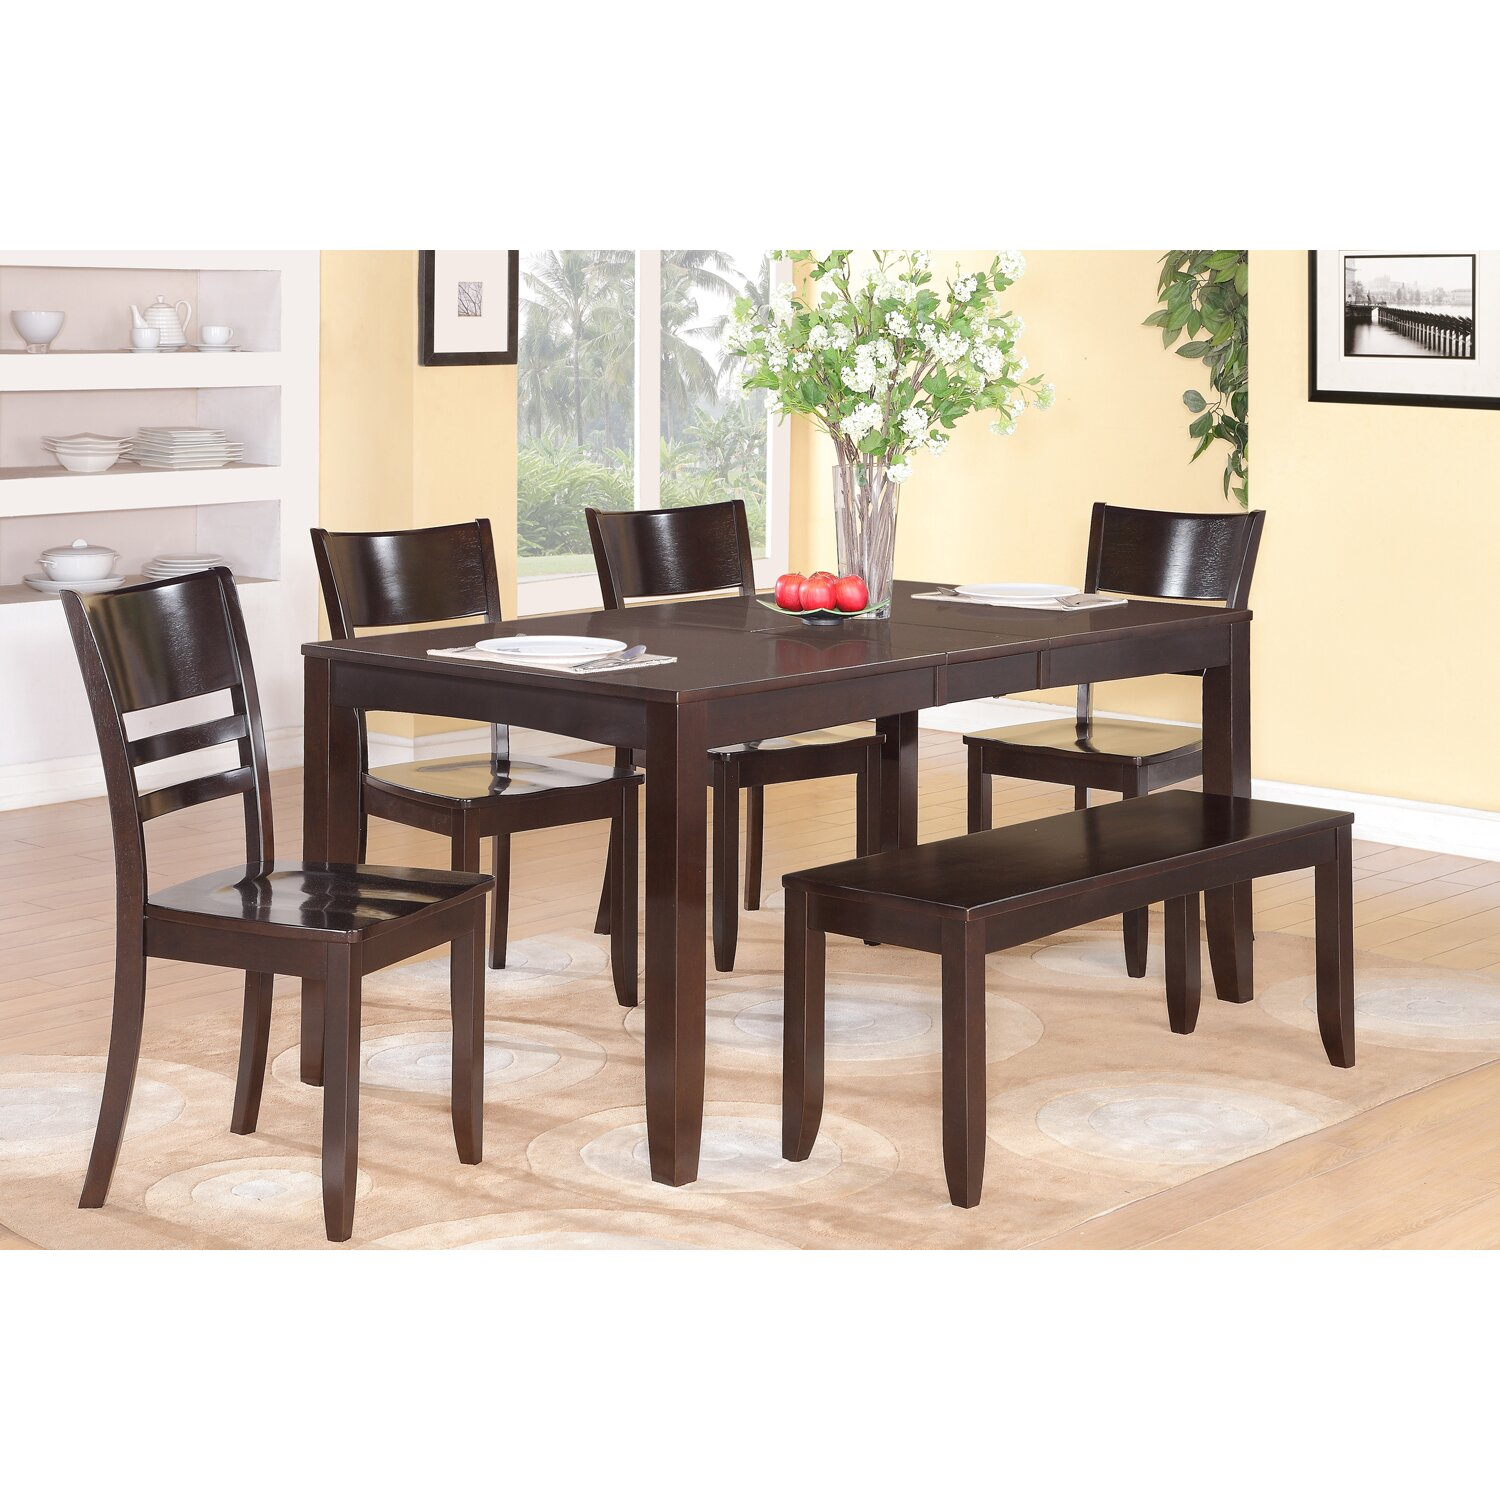 Wooden importers lynfield 6 piece dining set reviews for Dining room sets 6 piece